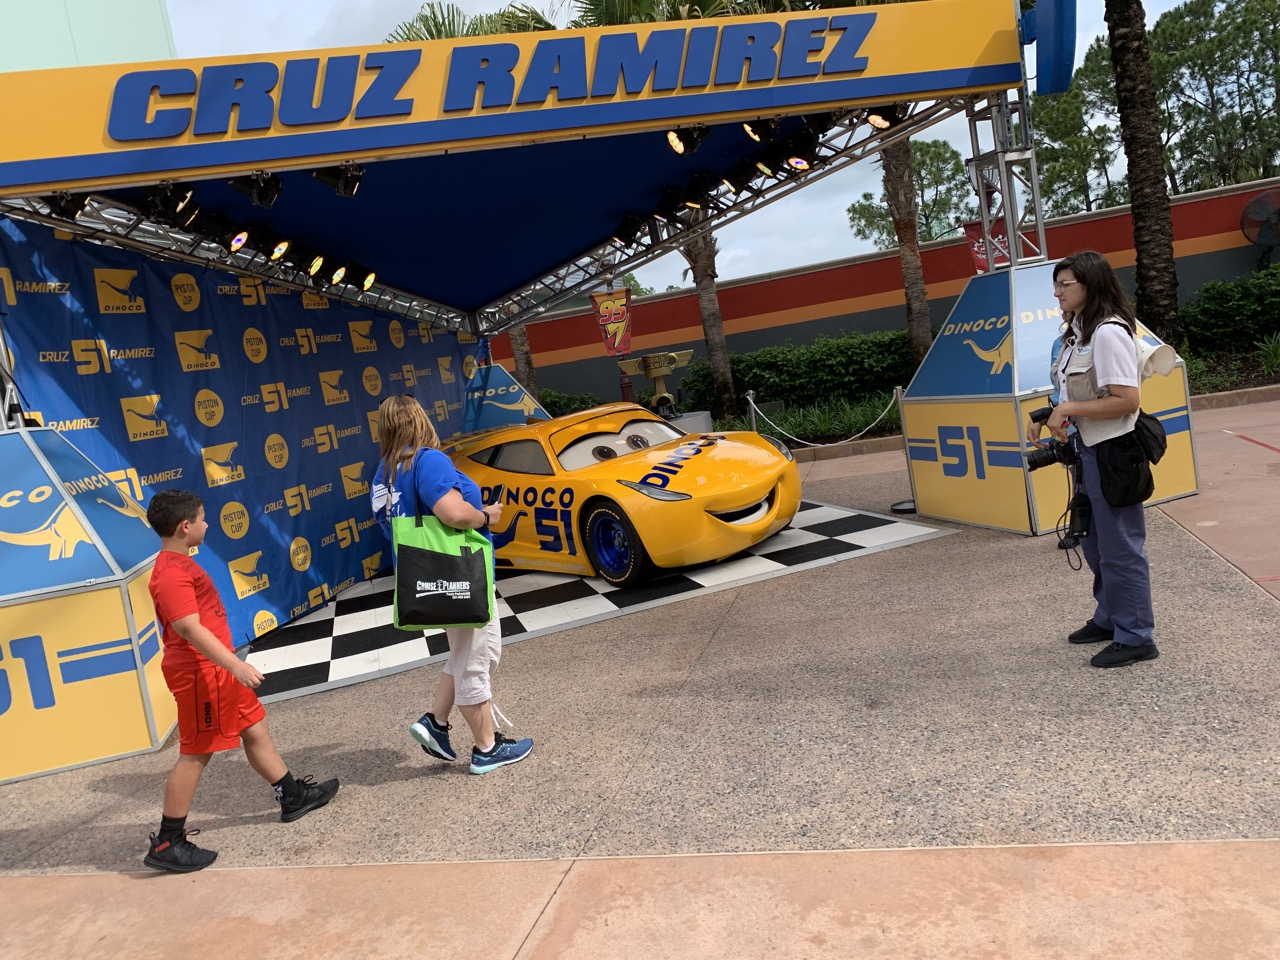 disney world trip report early summer 2019 day two 30 cruz ramirez.jpeg